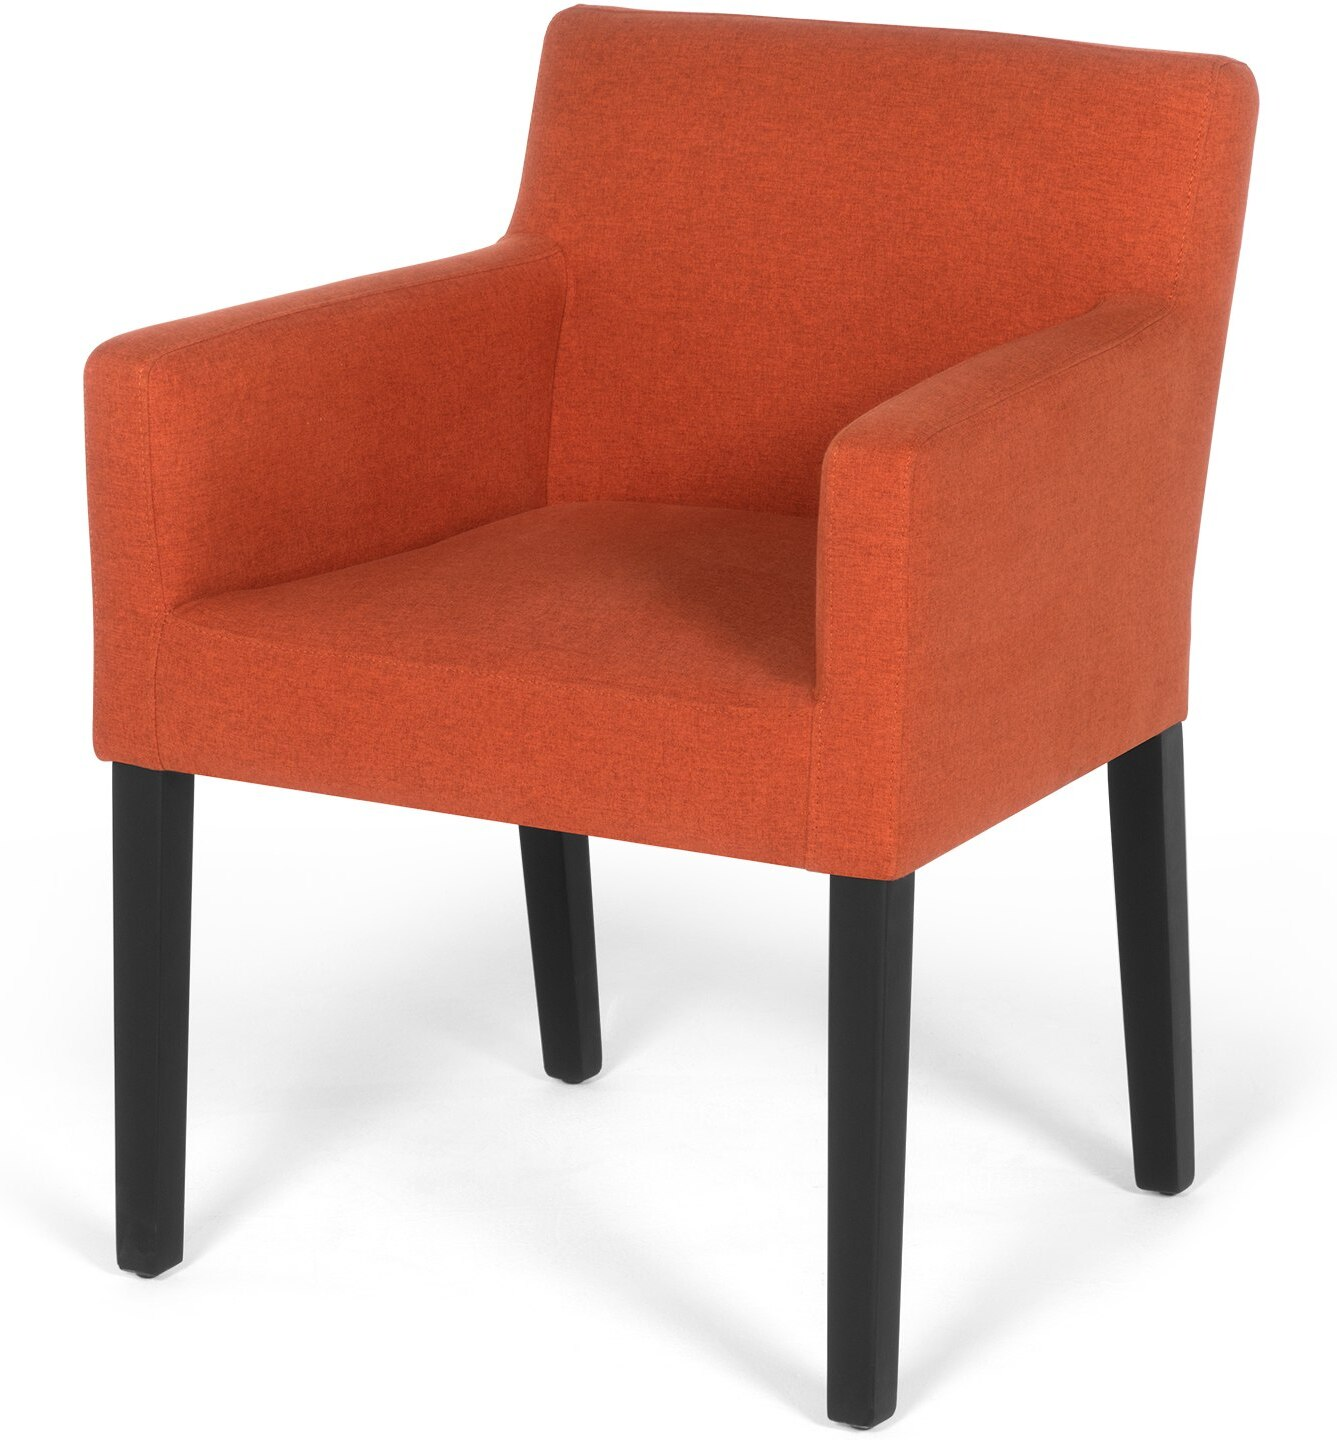 Dining Chairs Online Cheap Retro Chair Shop For Cheap Products And Save Online